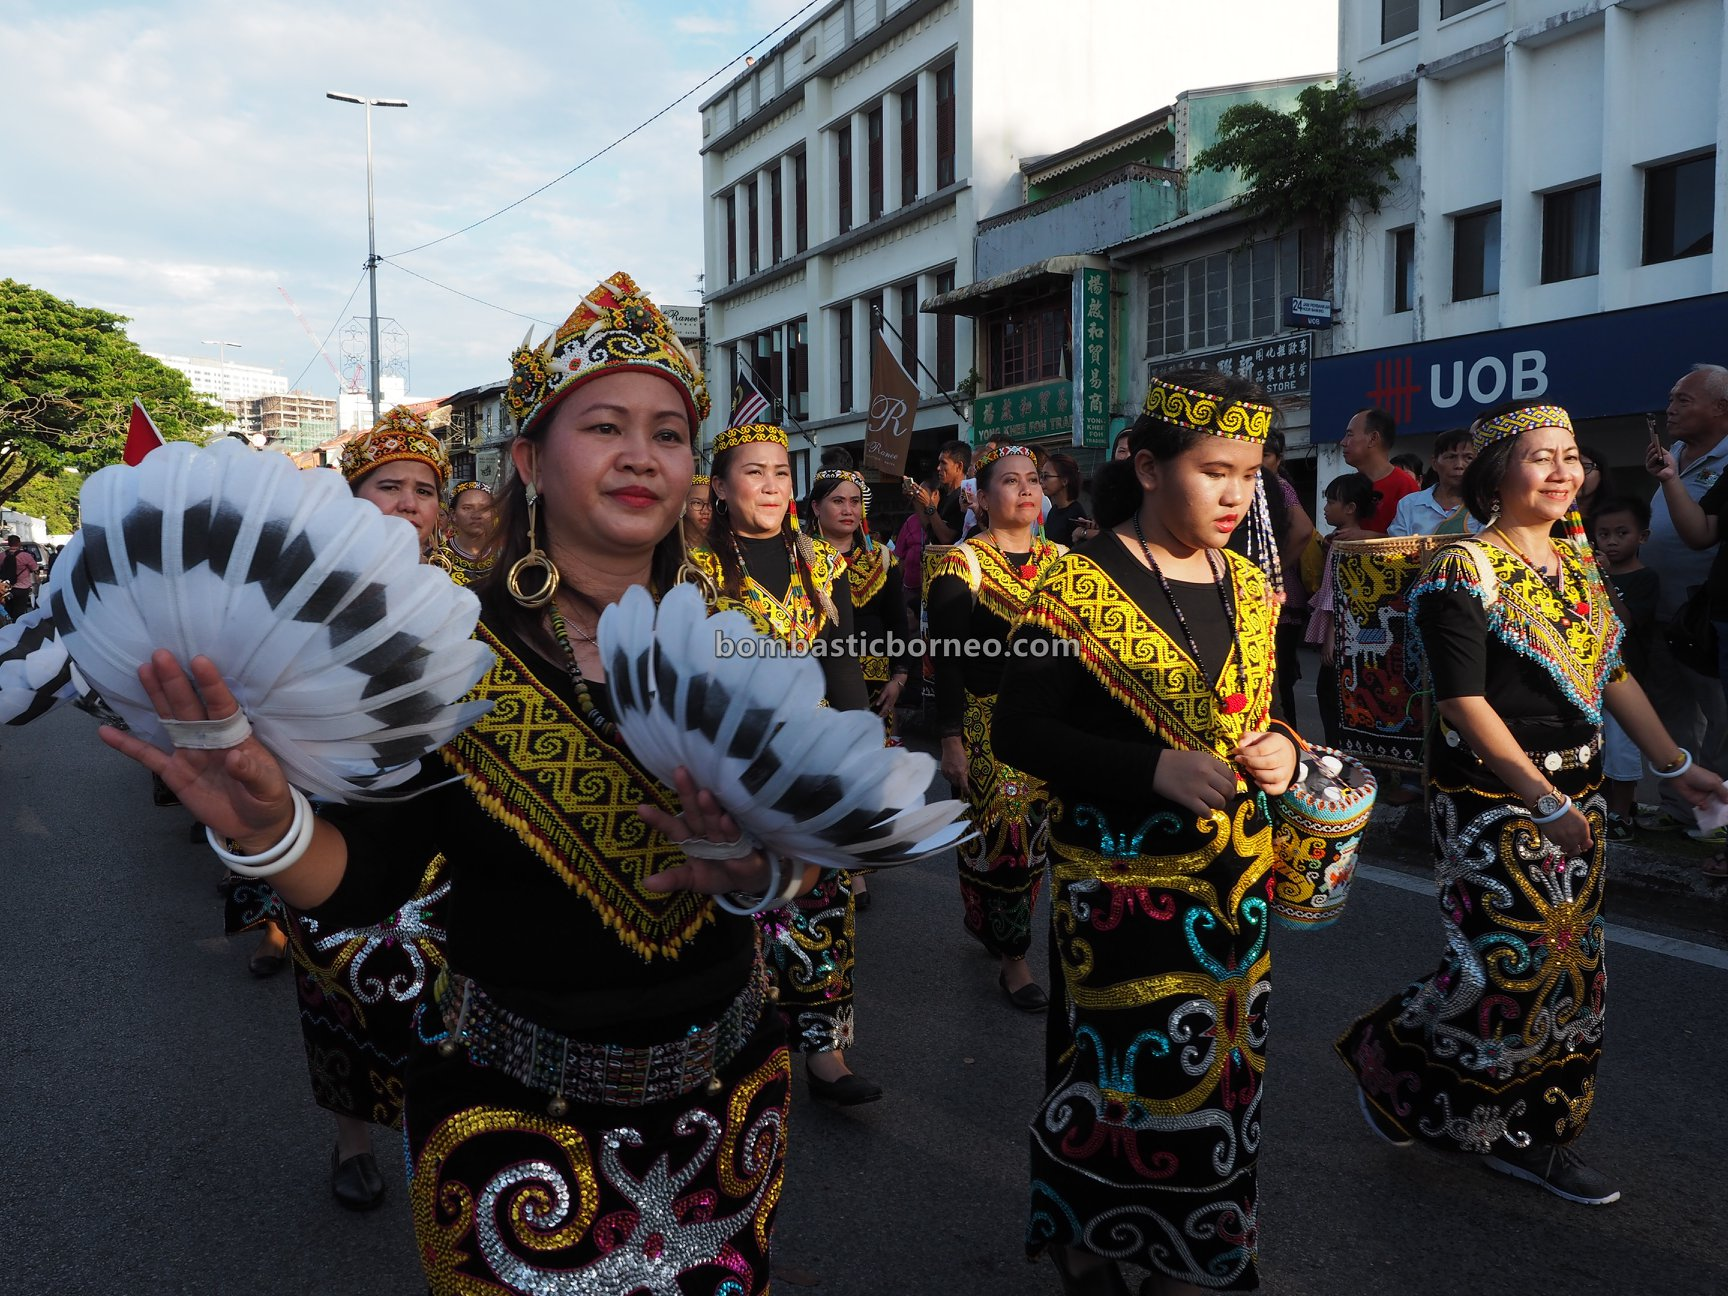 Gawai Parade, authentic, culture, event, backpackers, Kuching Waterfront, indigenous, tribal, tourism, tourist attraction, Trans Borneo, 婆罗洲土著部落, 砂拉越肯雅族文化, 原住民达雅丰收节日, Orang Ulu,